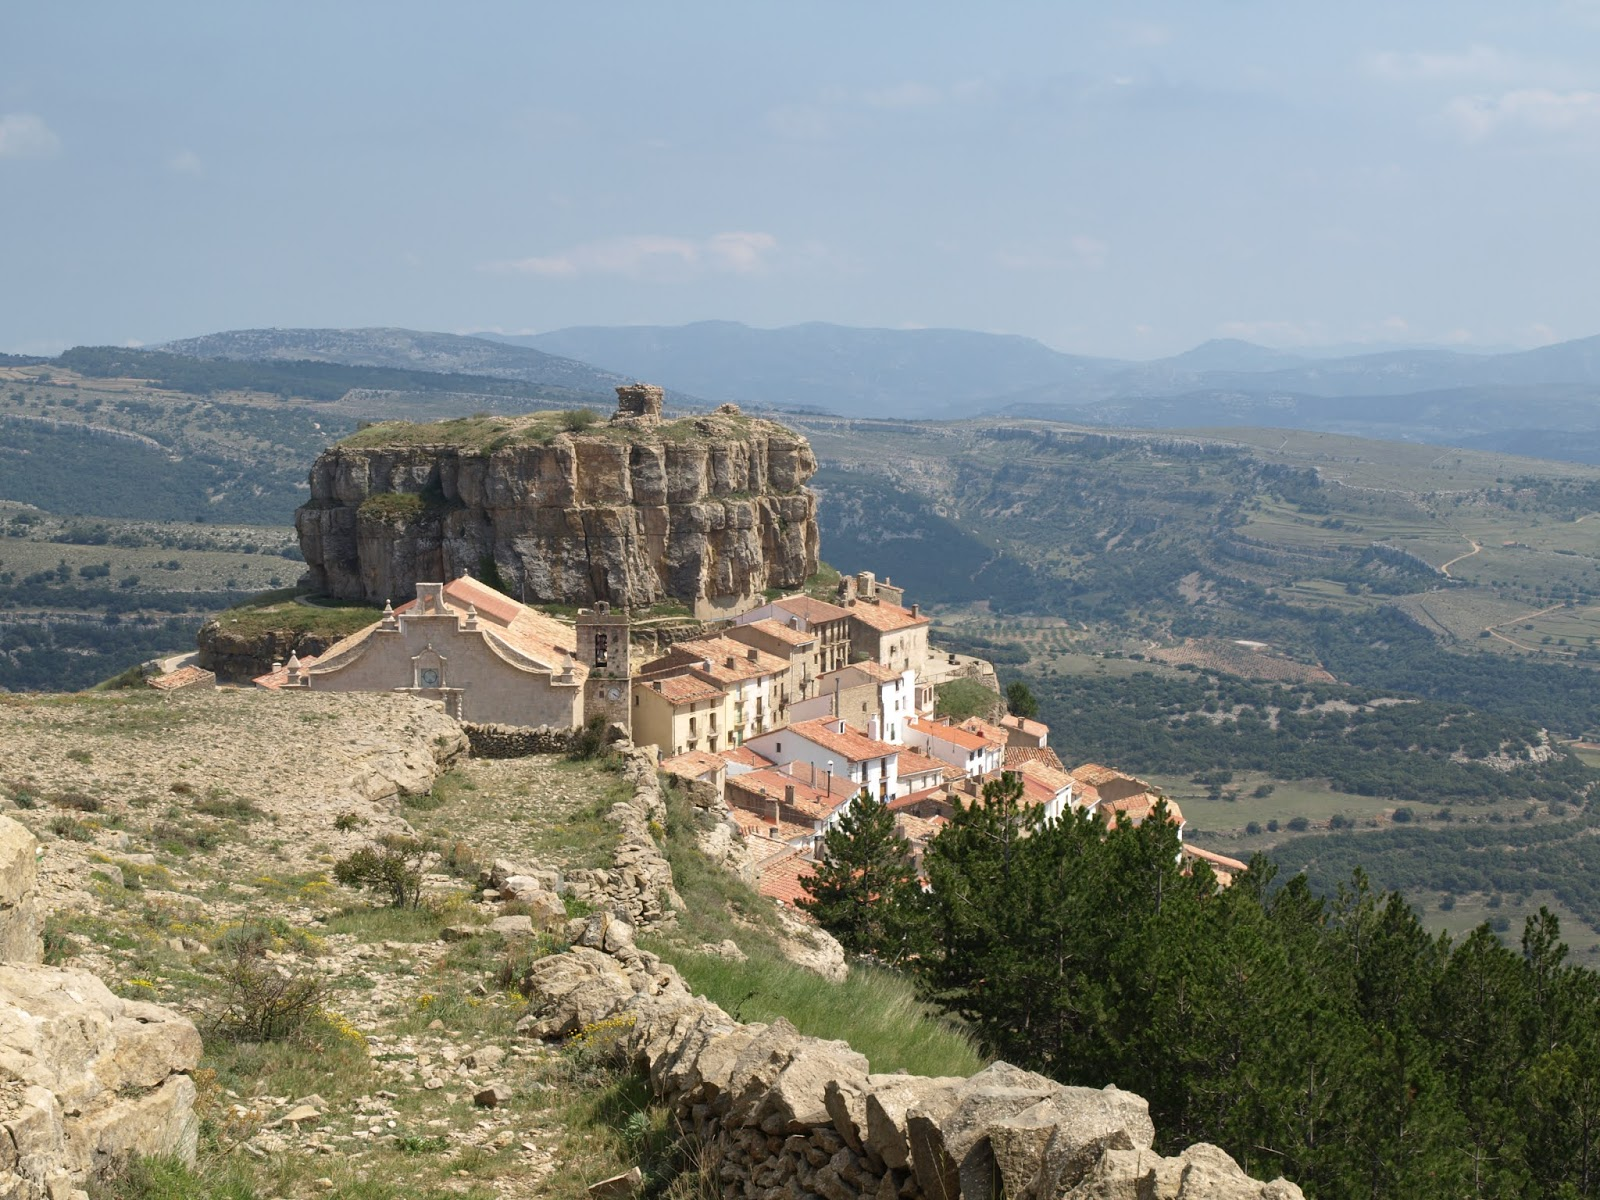 View of village of Ares del Maestre, Spain